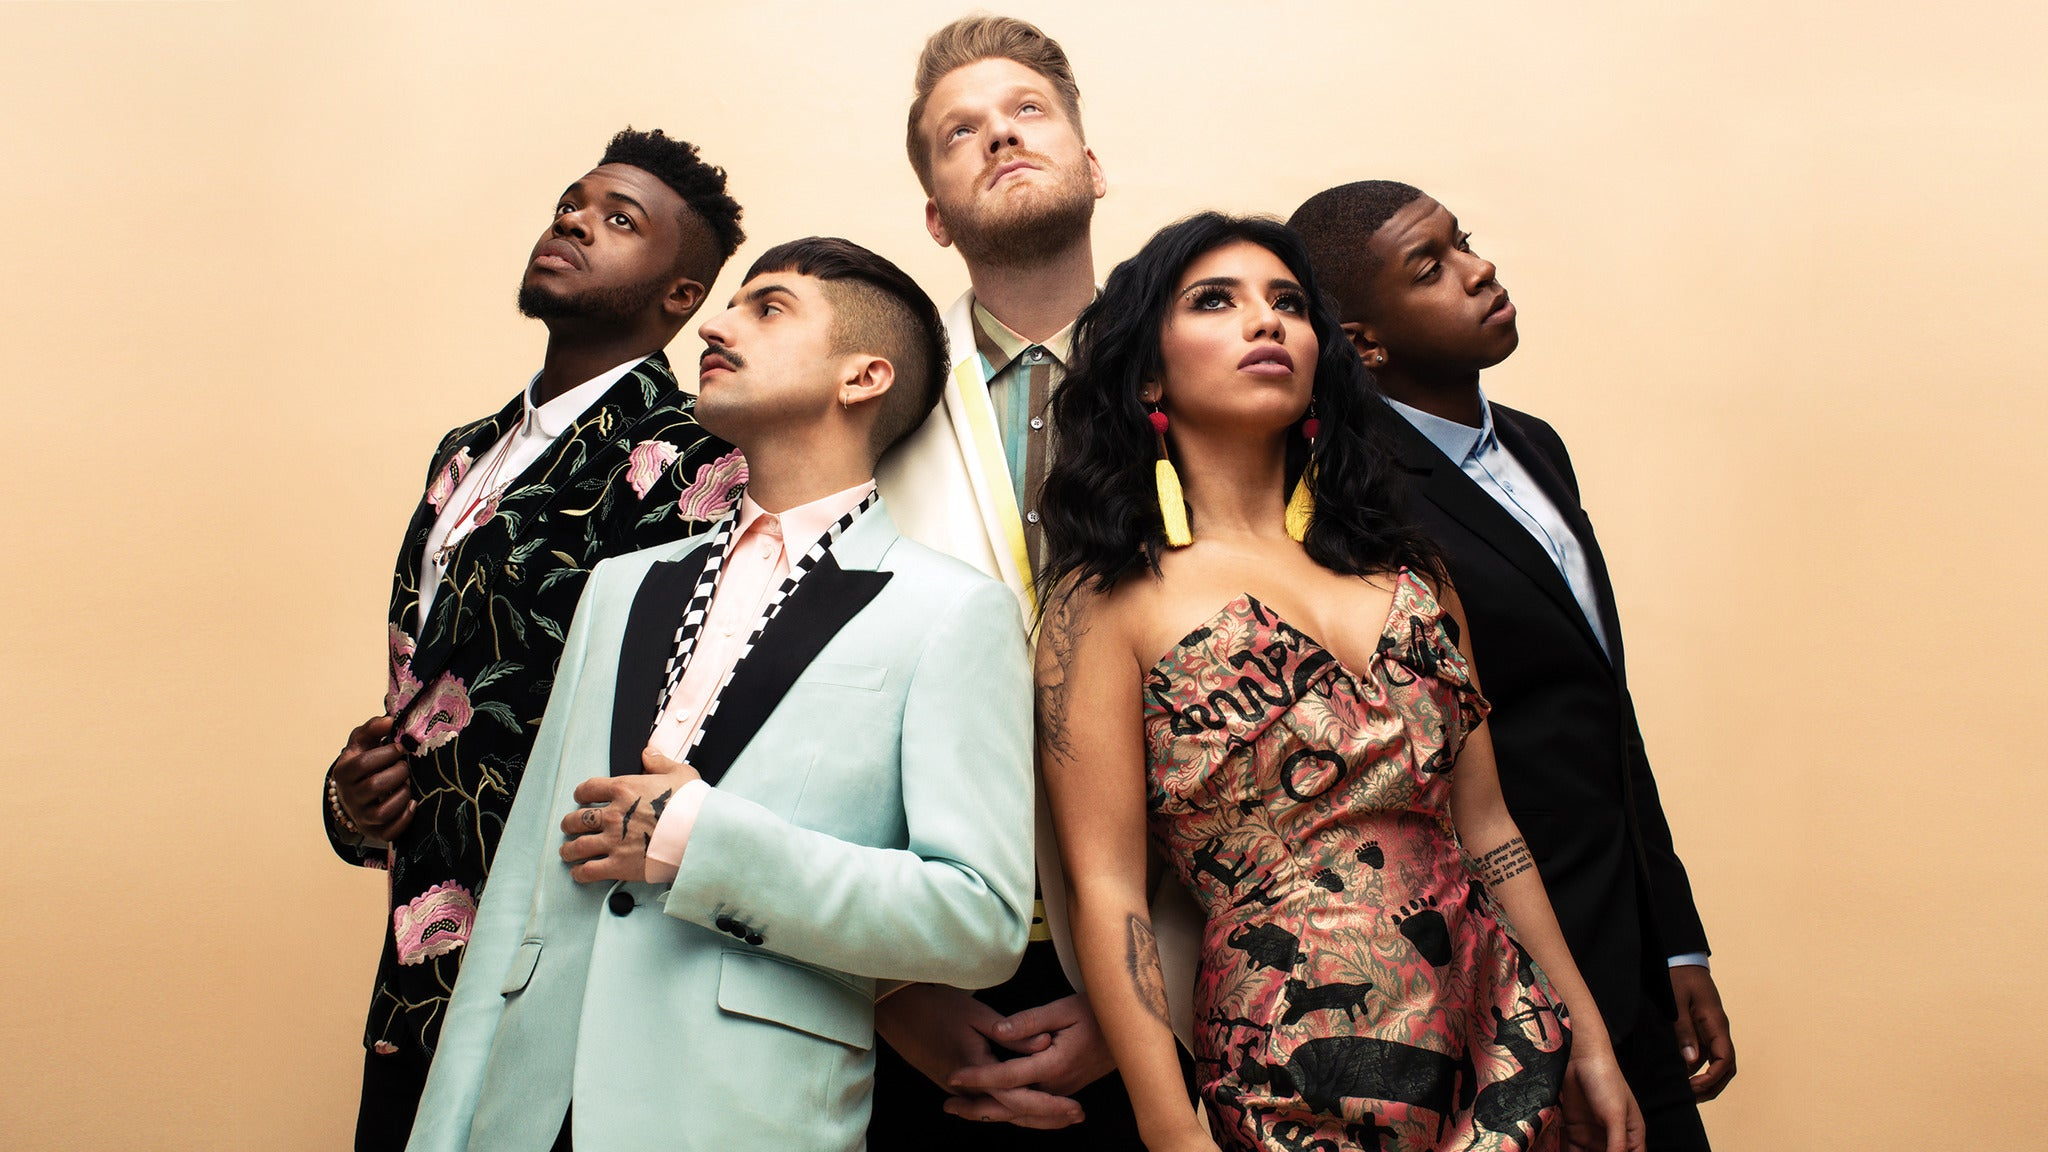 Pentatonix at White River Amphitheatre